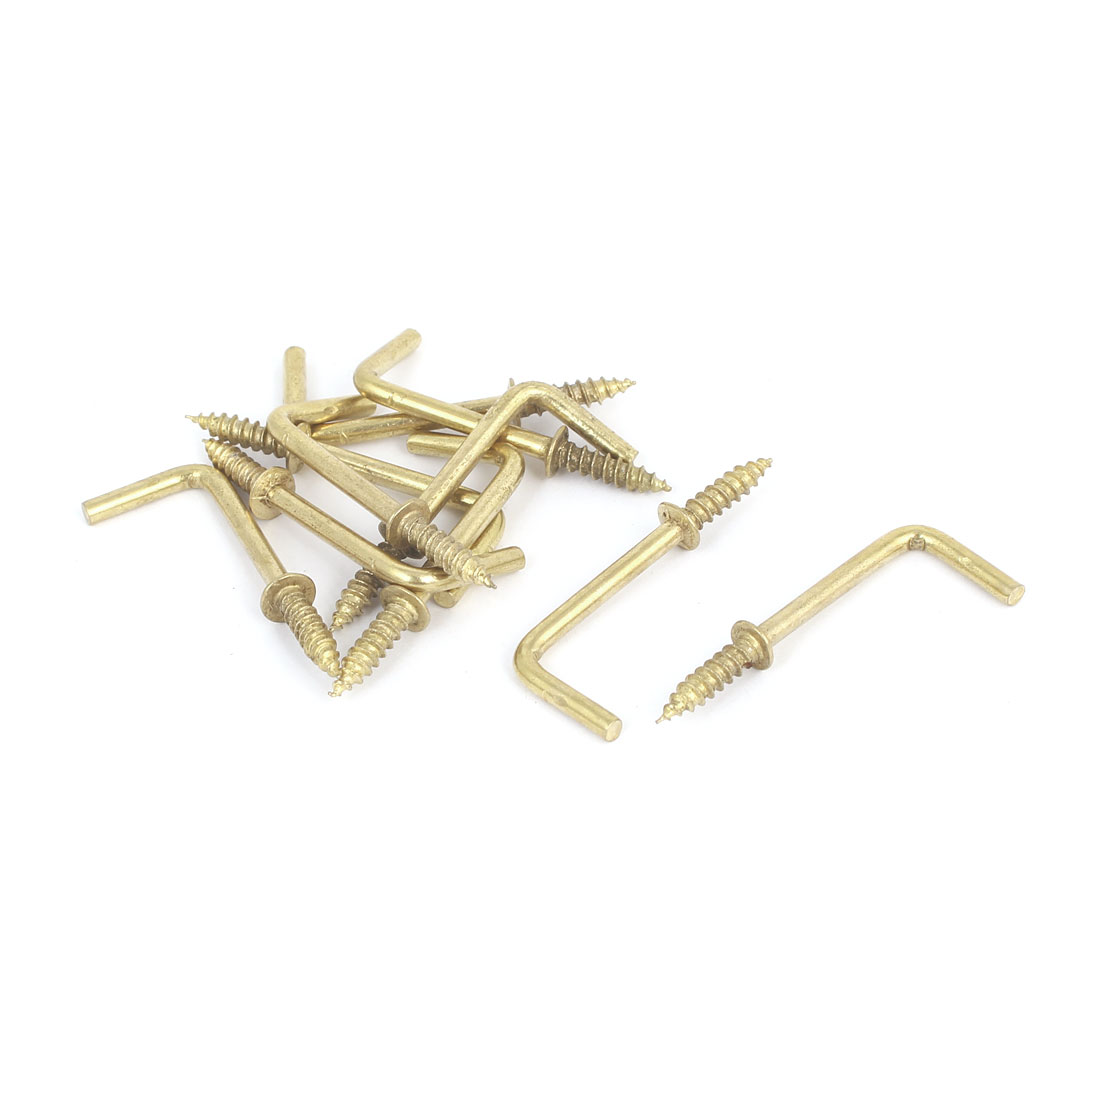 39mm x 14mm L Shaped Shoulder Screw Dresser Dress Cup Hook Hanging Hanger 10PCS